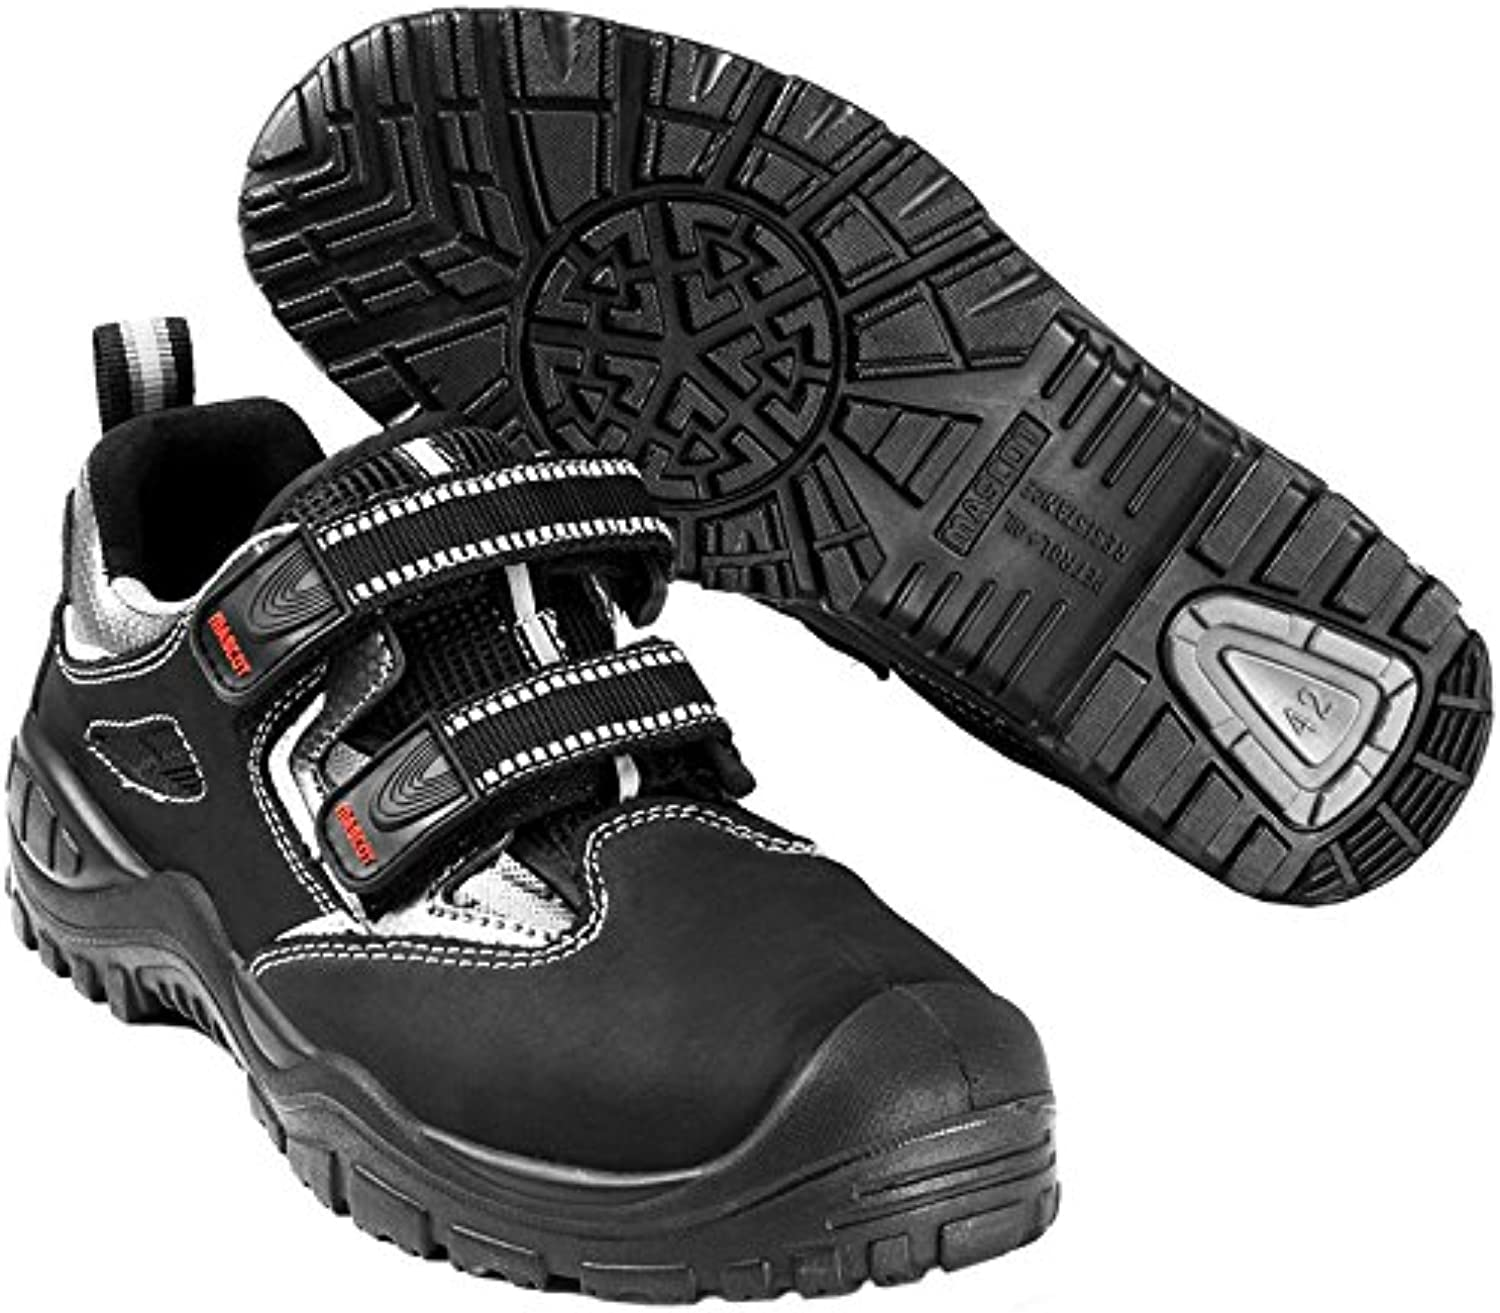 Mascot F0076-910-09-1141 Paldor Safety shoes, W11 41, Black